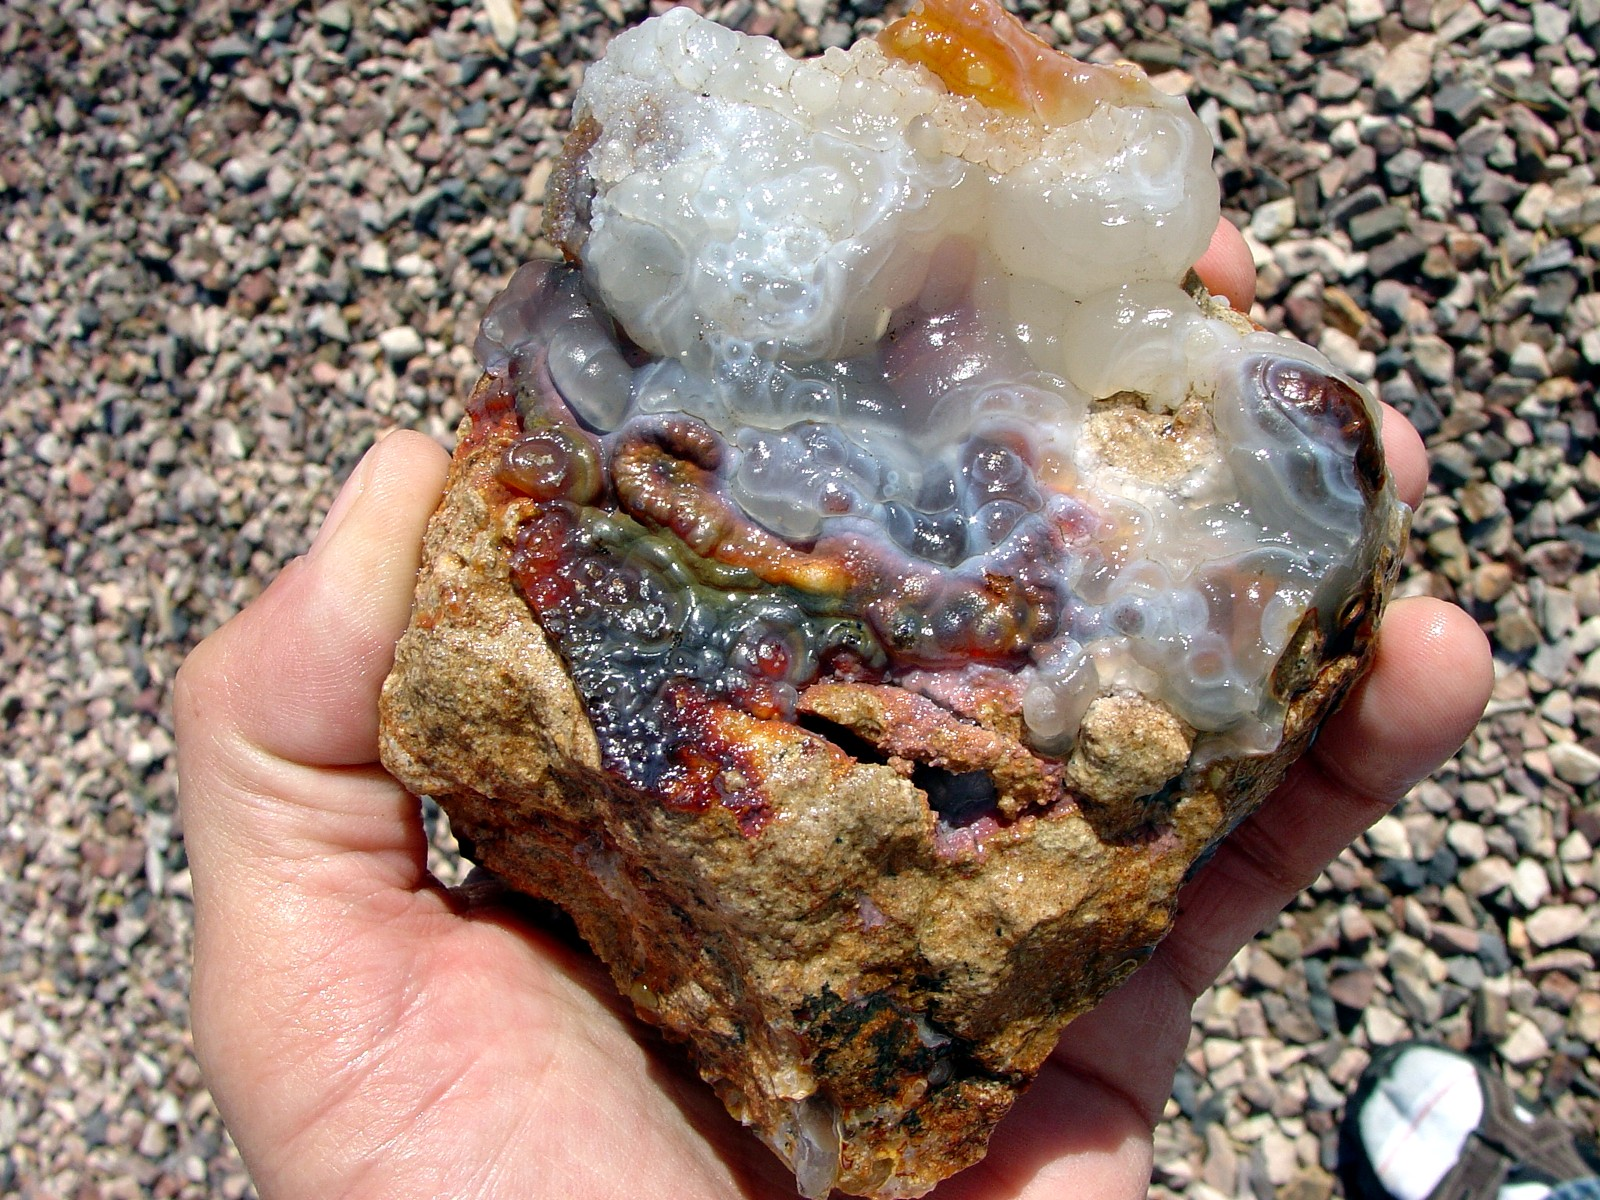 Wholesale Fire Agate Rough Shopping 10 Pounds Slaughter